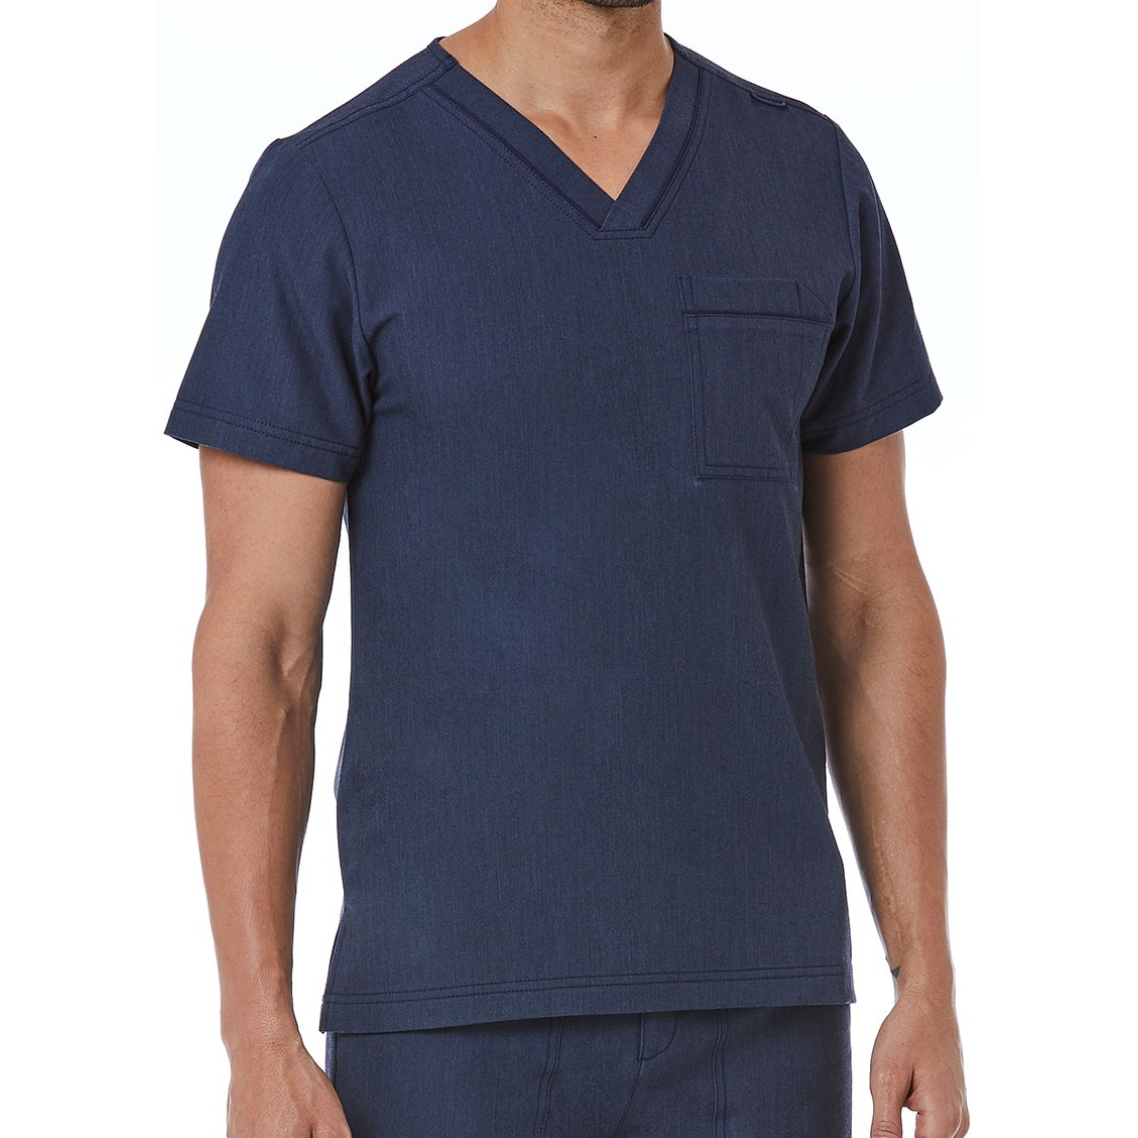 Men's Contrast Piping V-Neck Top 5901